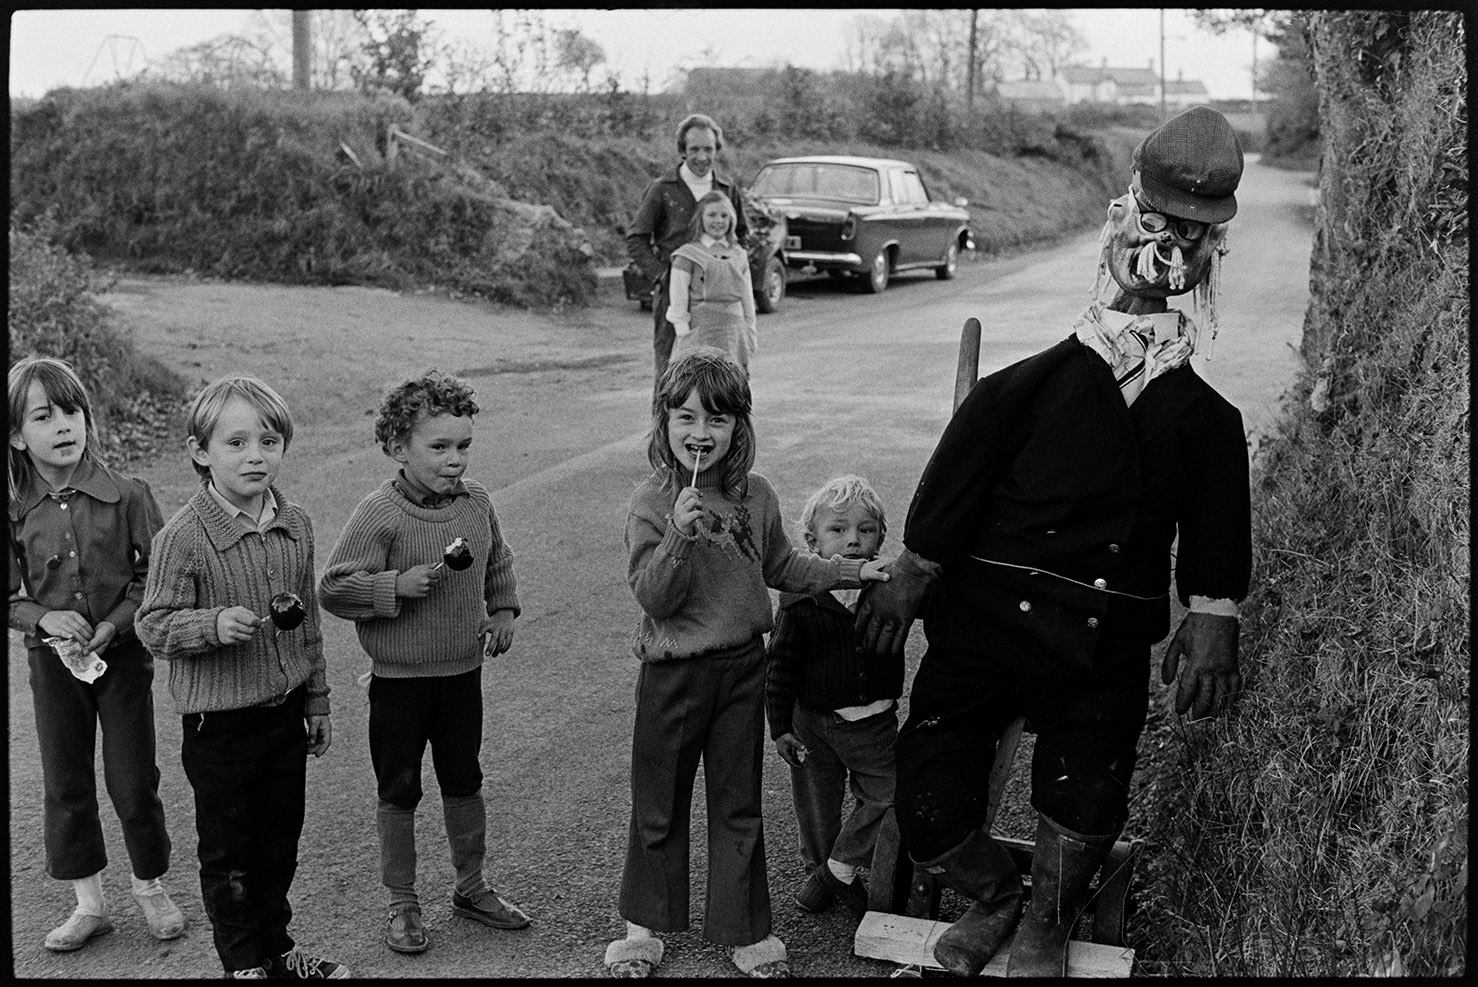 Guy in village street with children - Guy Fawkes, Ashreigney, October 1975